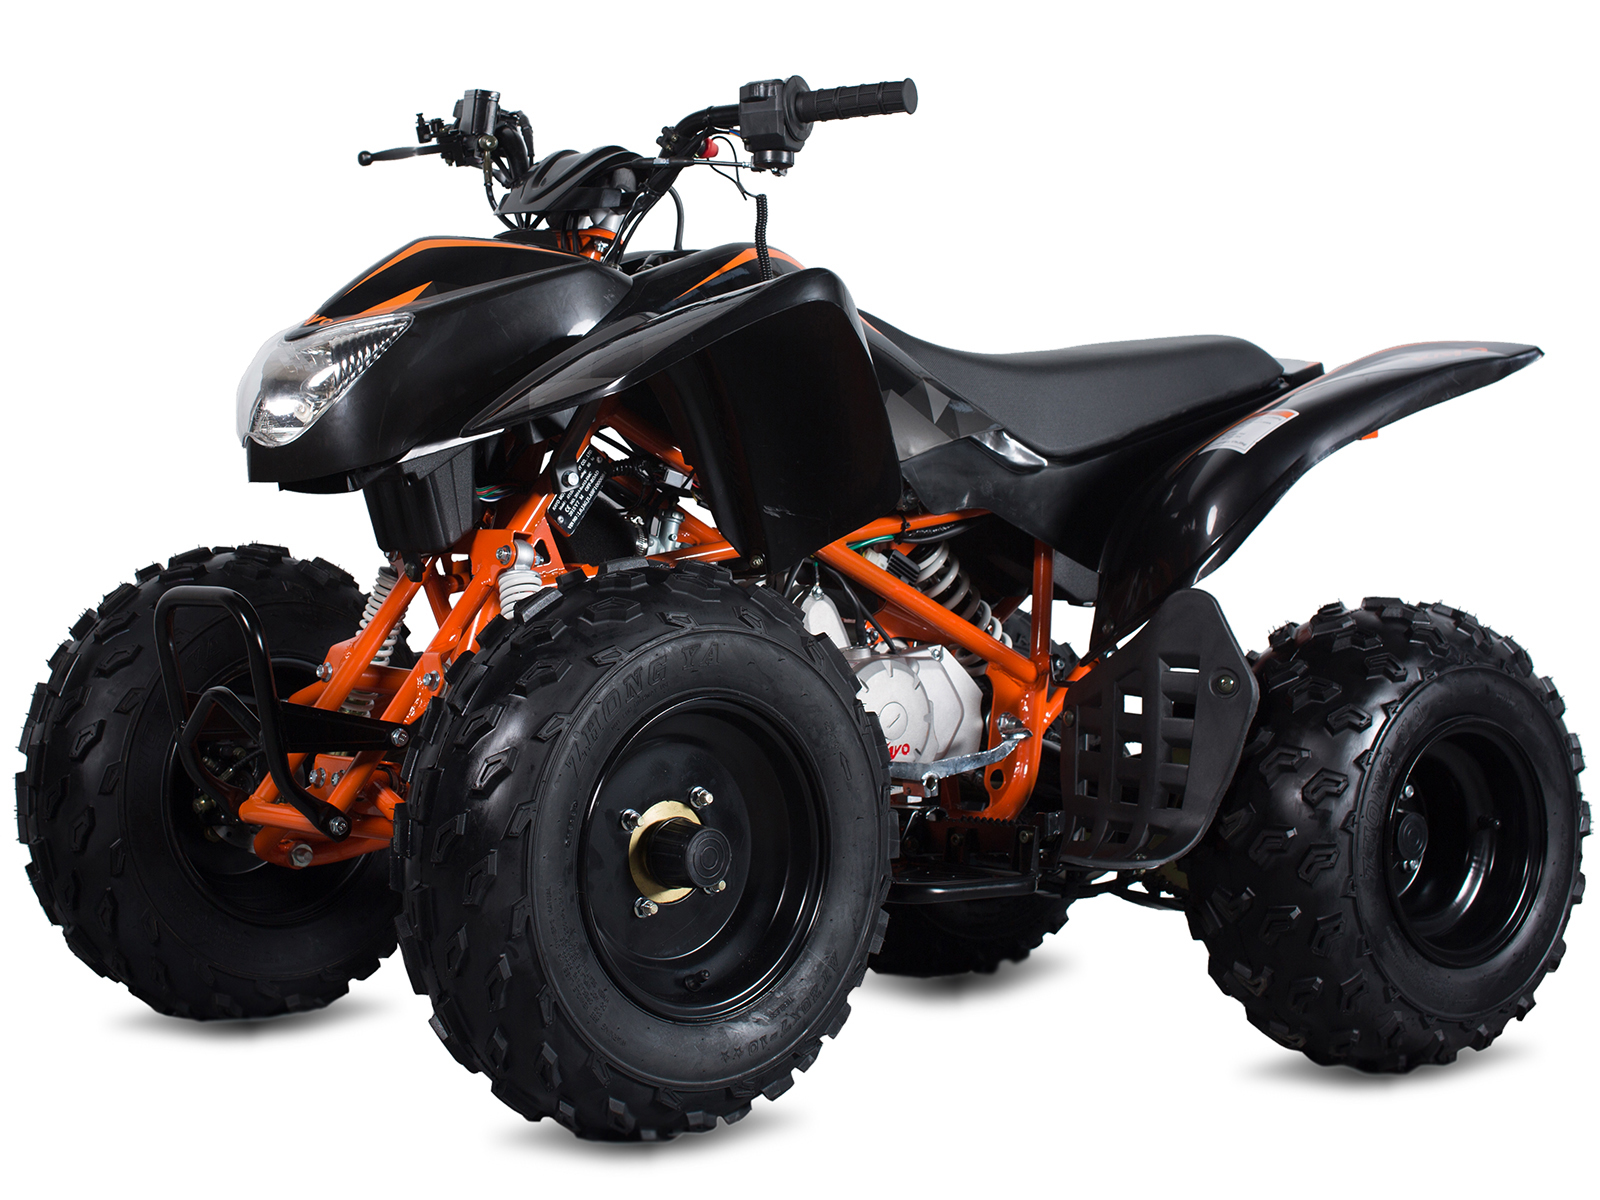 Details about RAGING BULL 125cc ATV QUAD BIKE Off-Road Buggy Rocker Stomp  Demon X Pit Bike